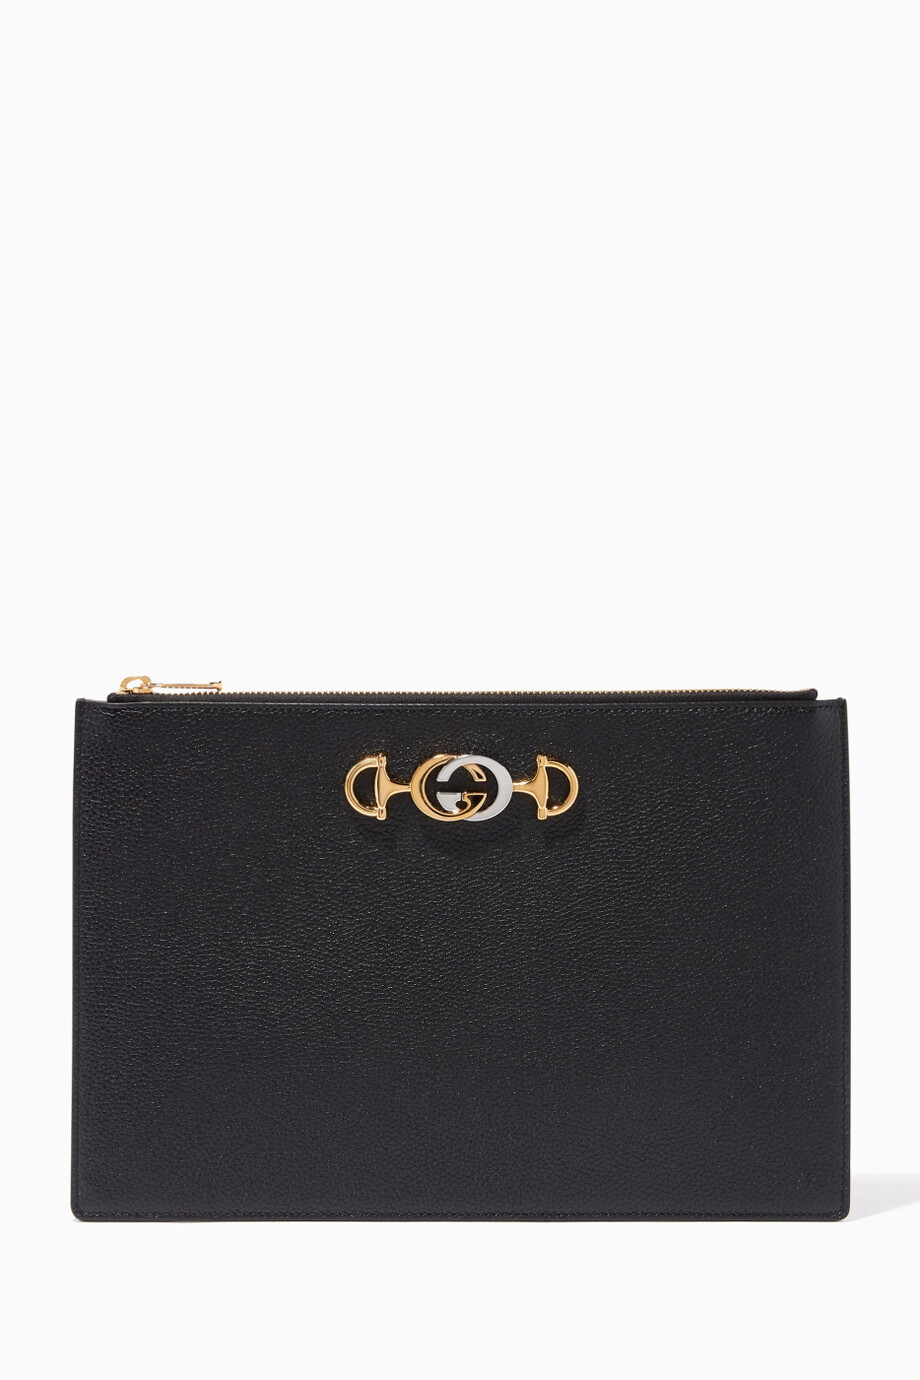 323f6051032 Shop Gucci Black Zumi Grainy Leather Pouch for Women